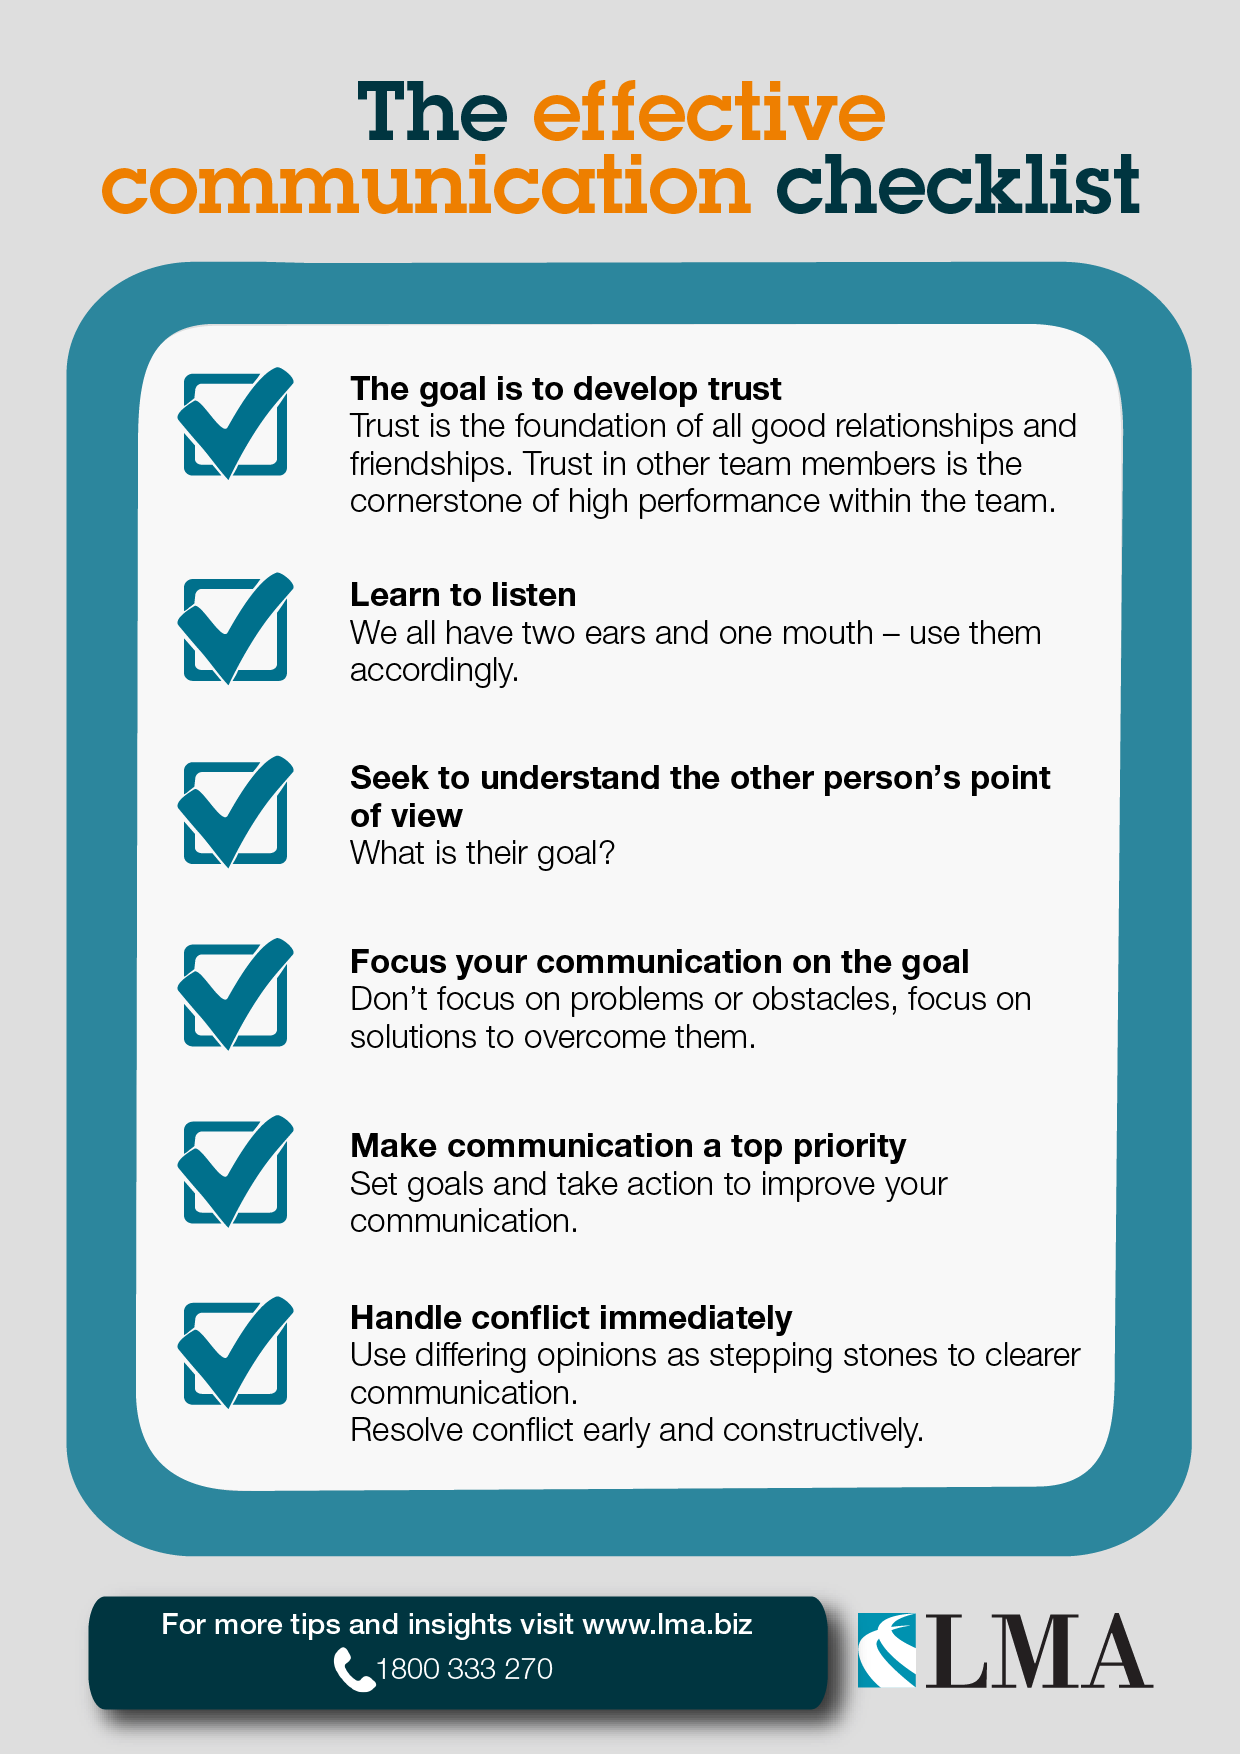 The effective communication checklist